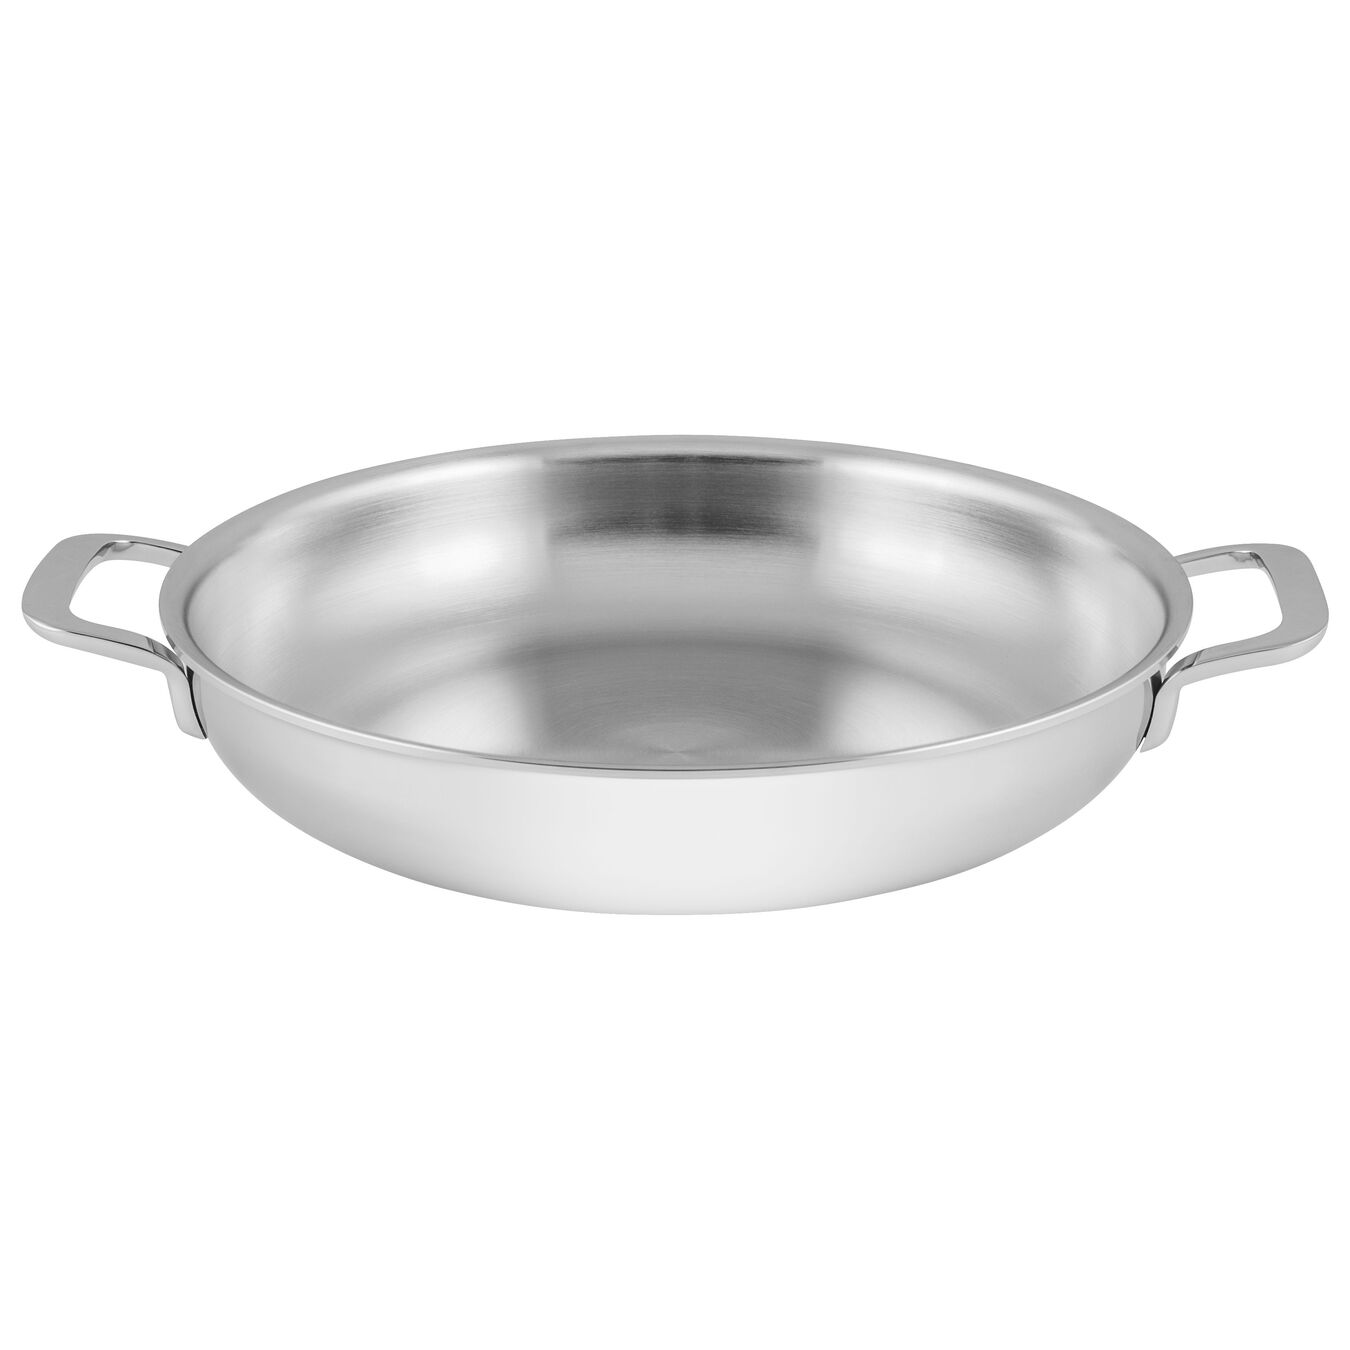 18/10 STAINLESS STEEL 28CM 7-PLY DOUBLE-HANDLED SKILLET,,large 1